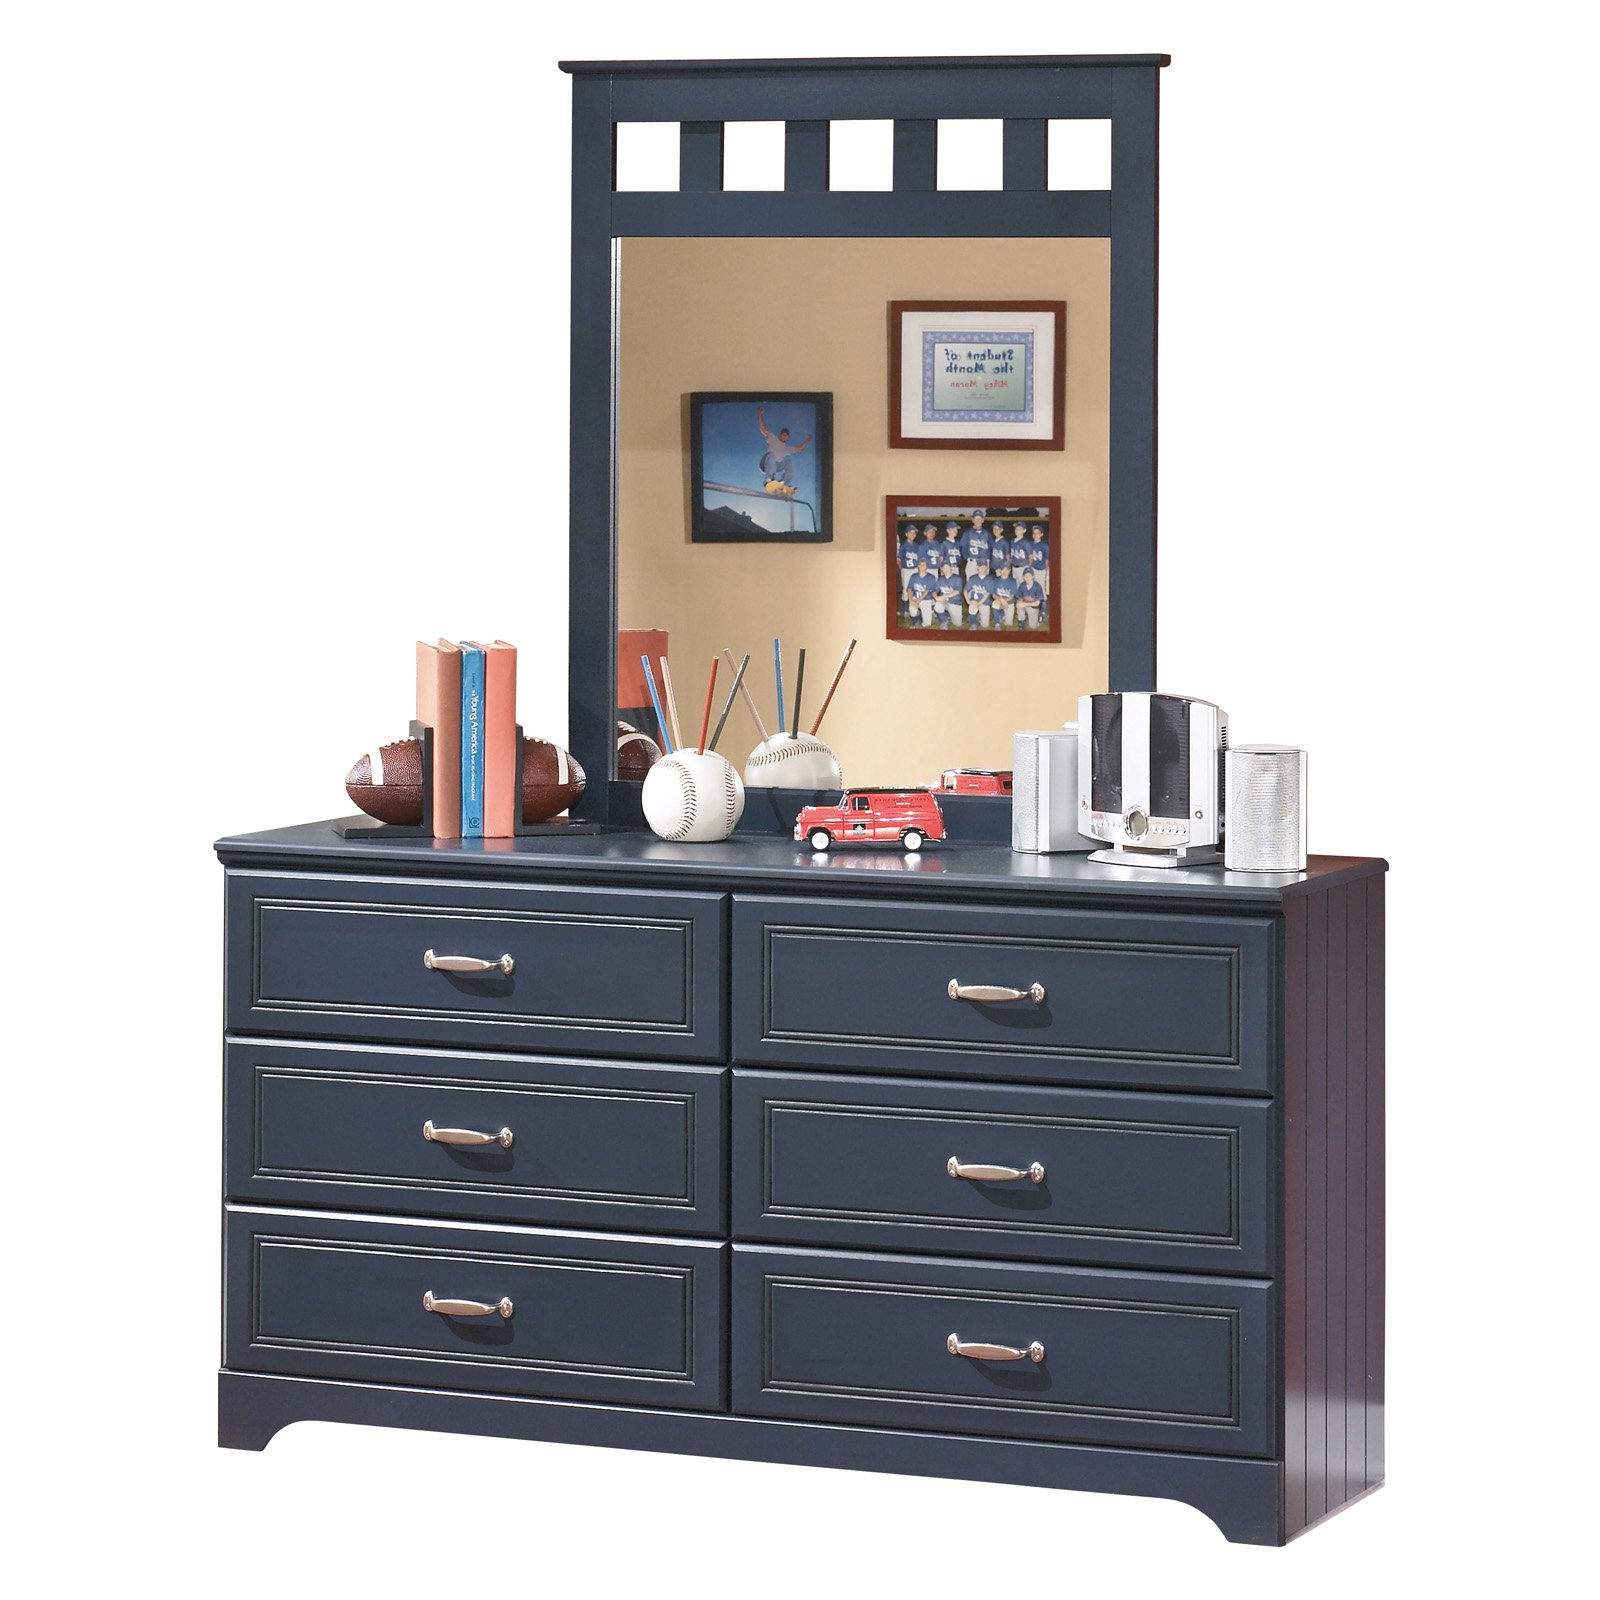 Signature Design by Ashley Leo 6 Drawer Dresser with Mirror